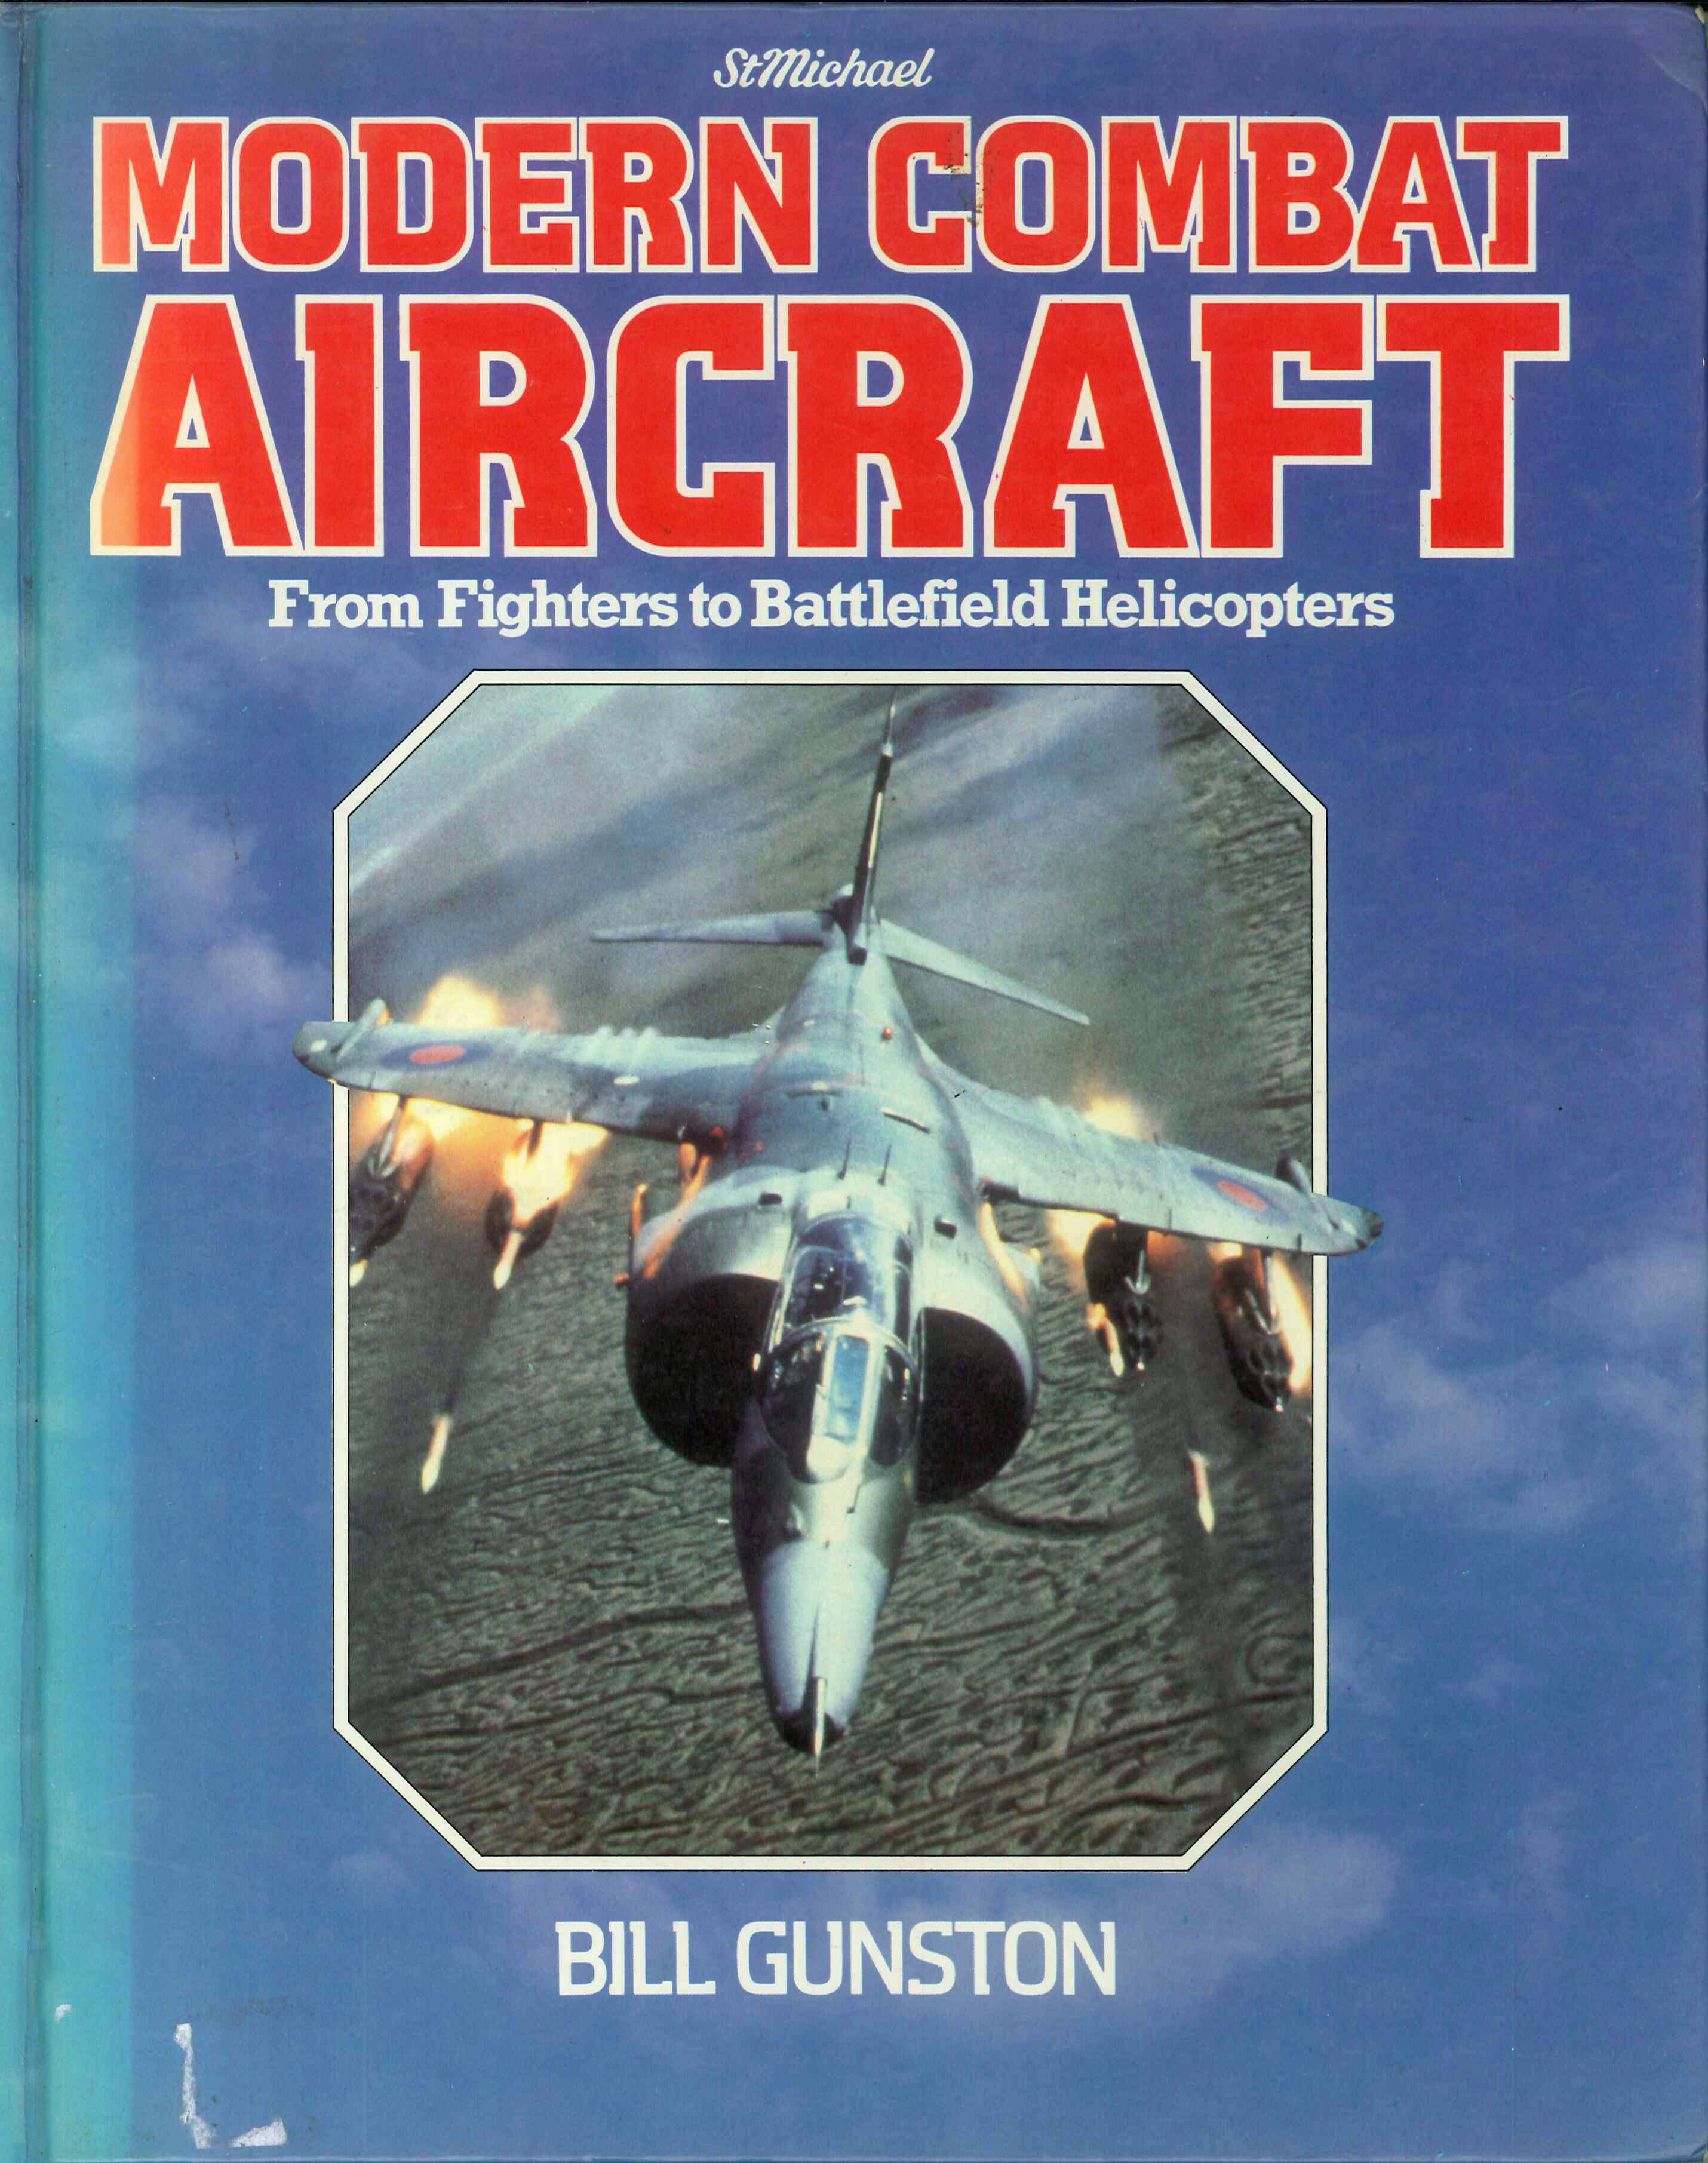 Modern Combat Aircraft from Fighters to Battlefield Helicopters